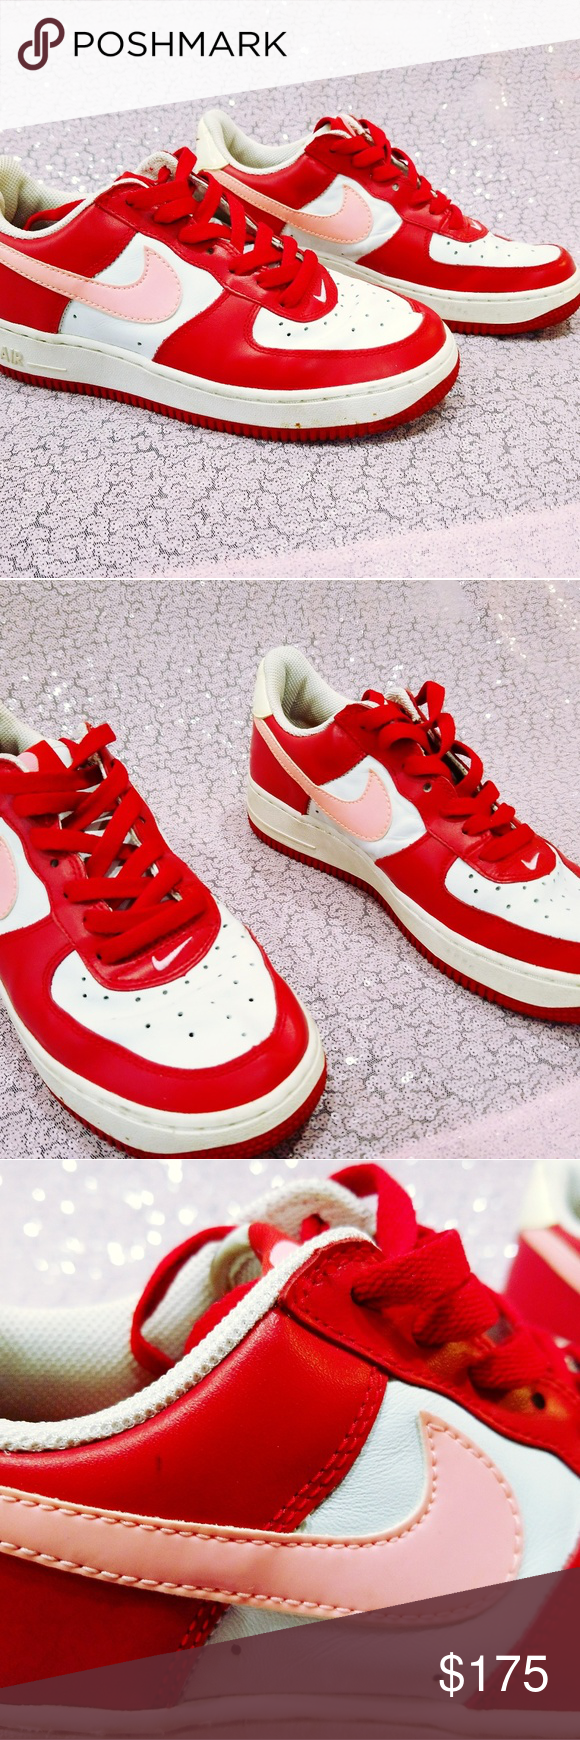 Sold Rare Nike Air Force 1 Valentine S Day Sz 7 5 In 2018 My Posh